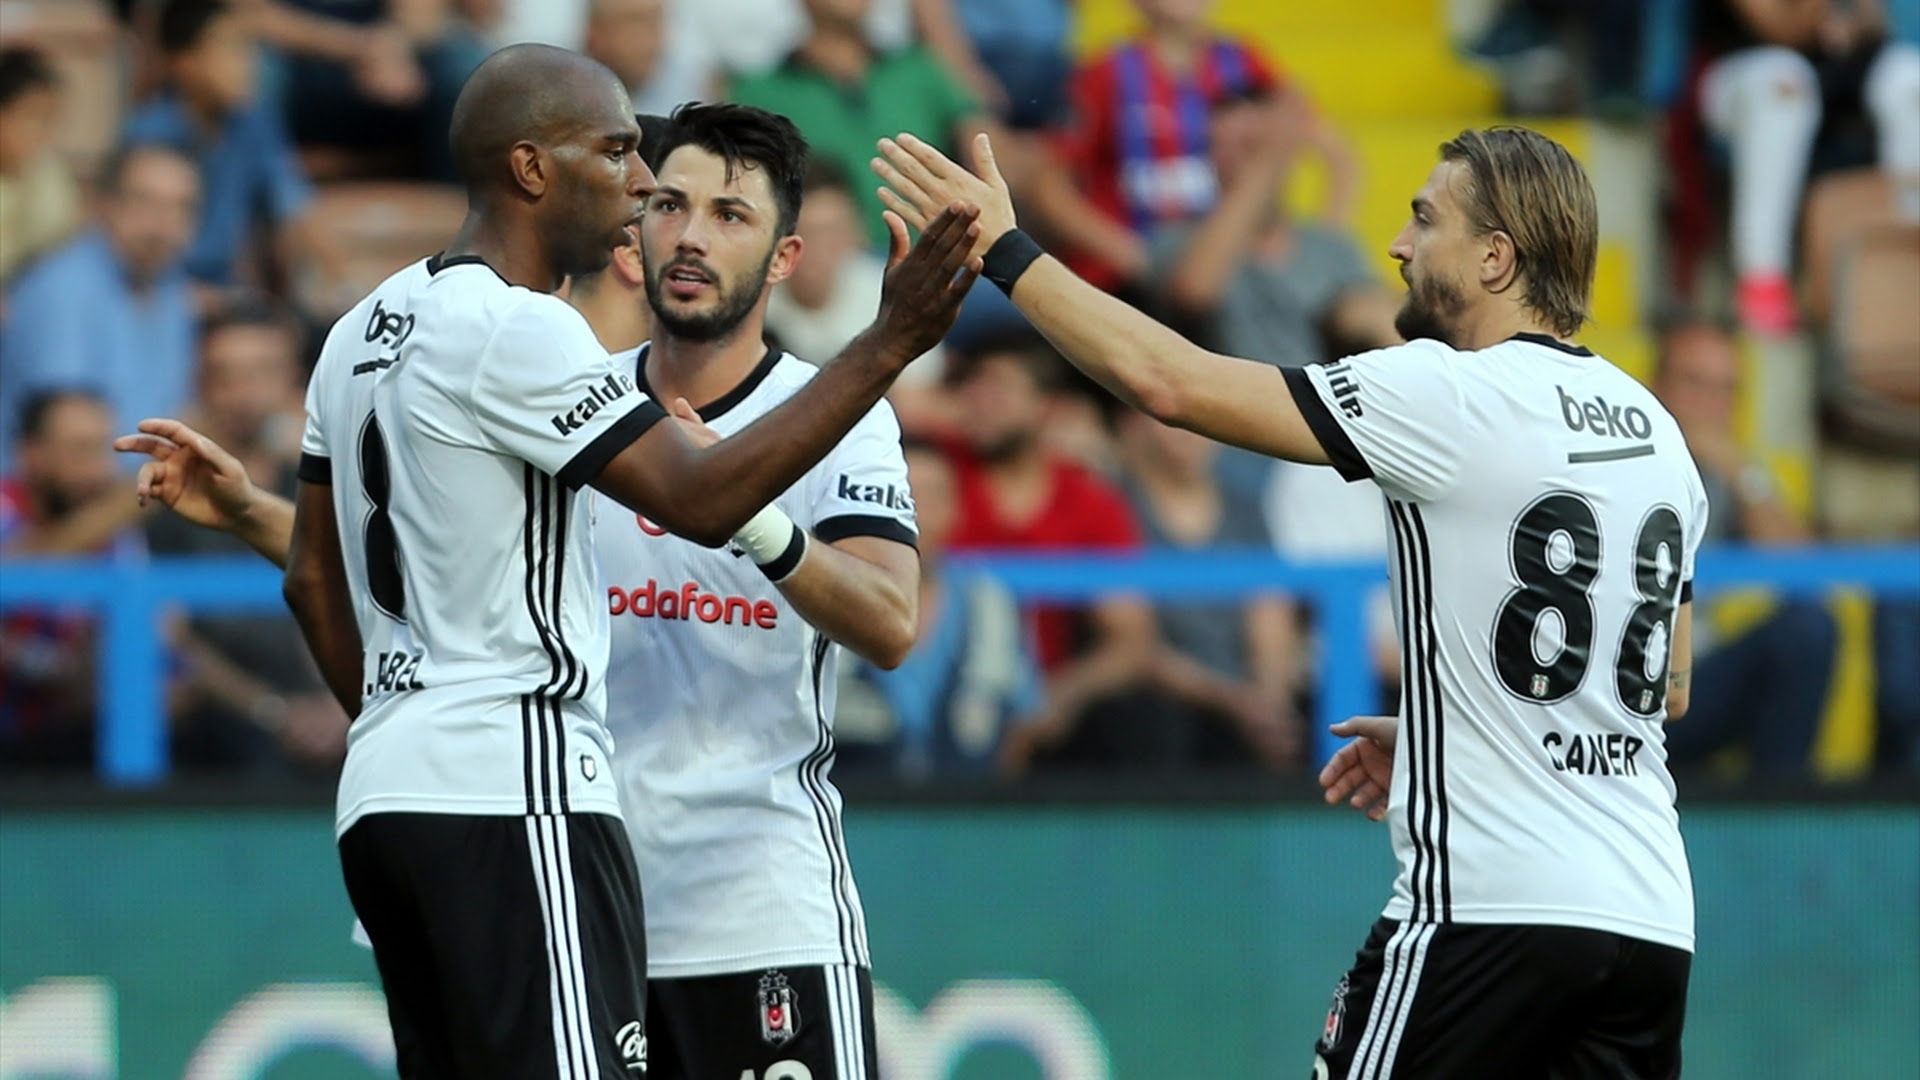 Ryan Babel Tolgay Arslan Caner Erkin Besiktas goal celebration 992017